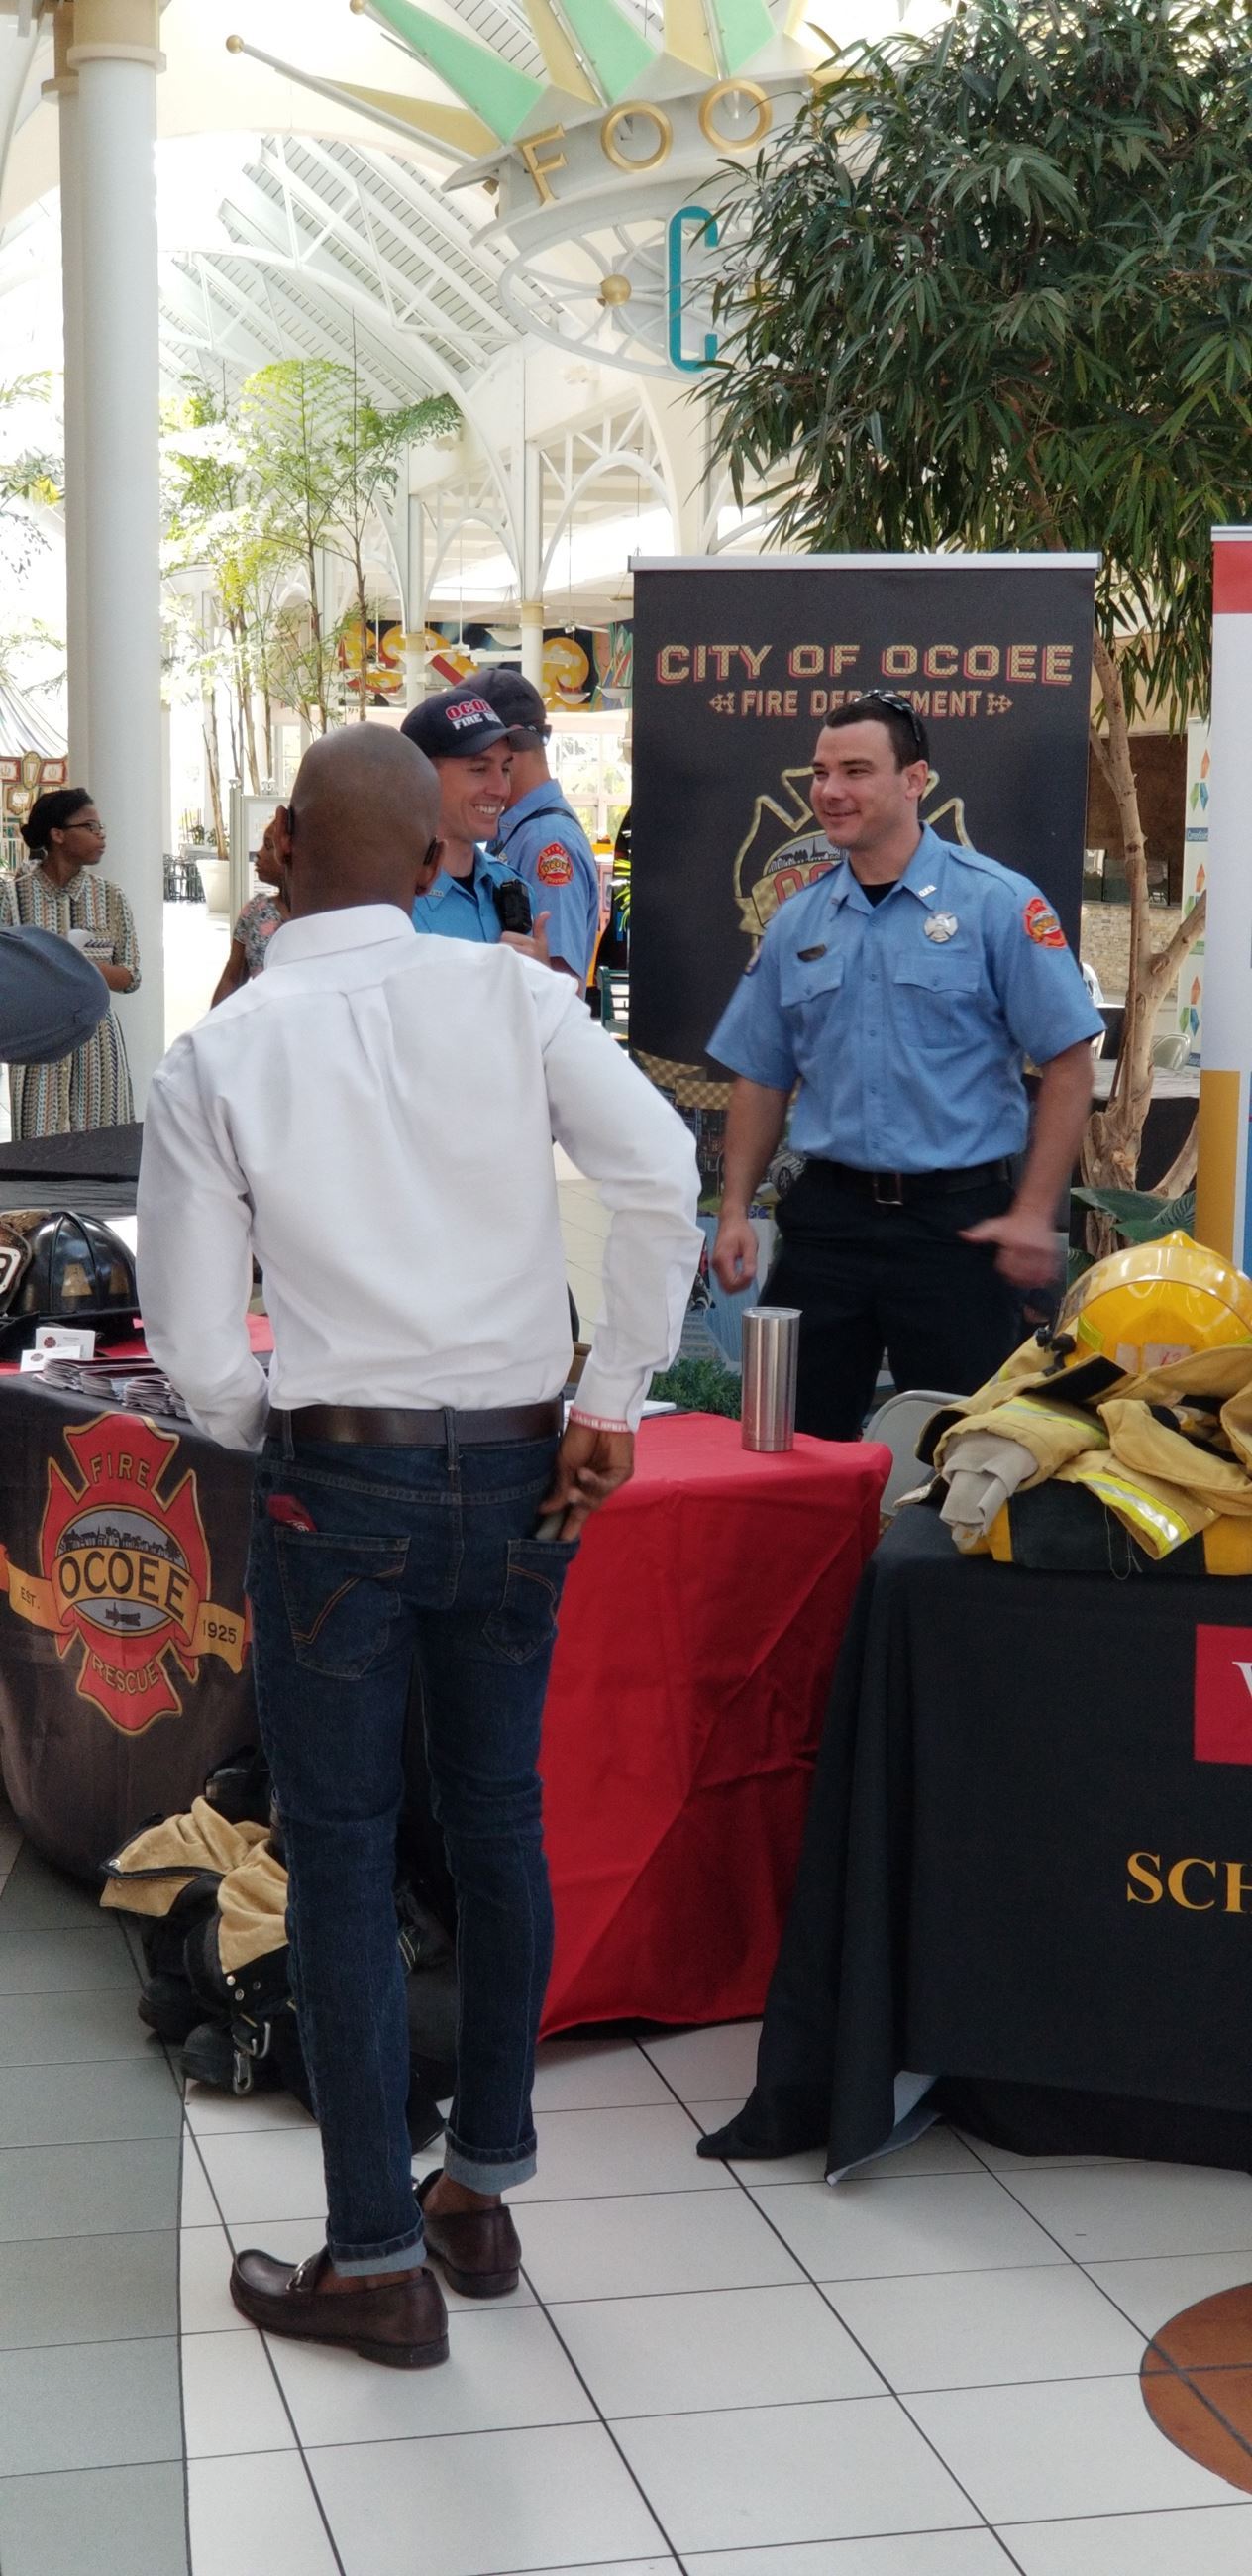 Ocoee Job Fair - June 9 2018. 7